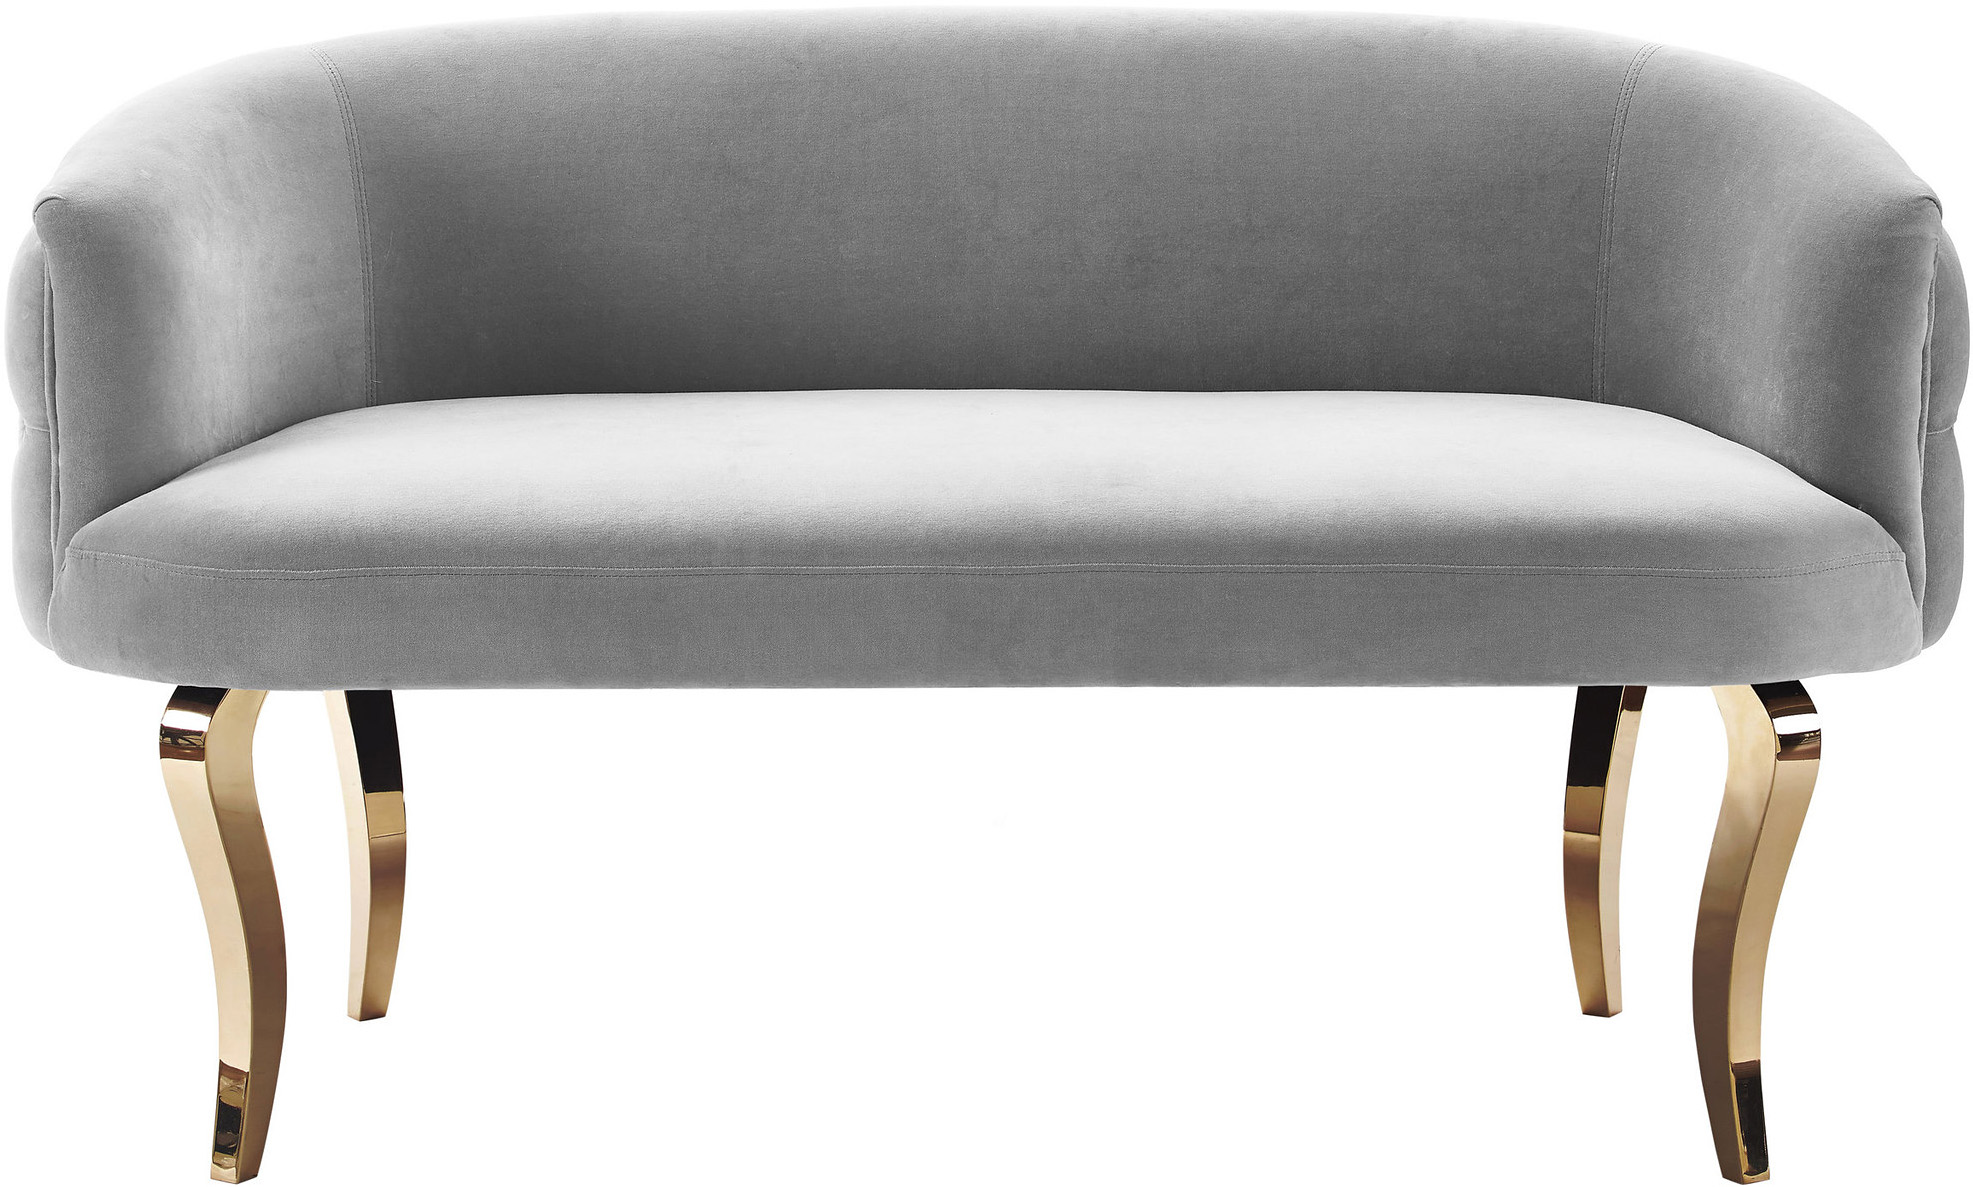 the taylor velvet grey loveseat